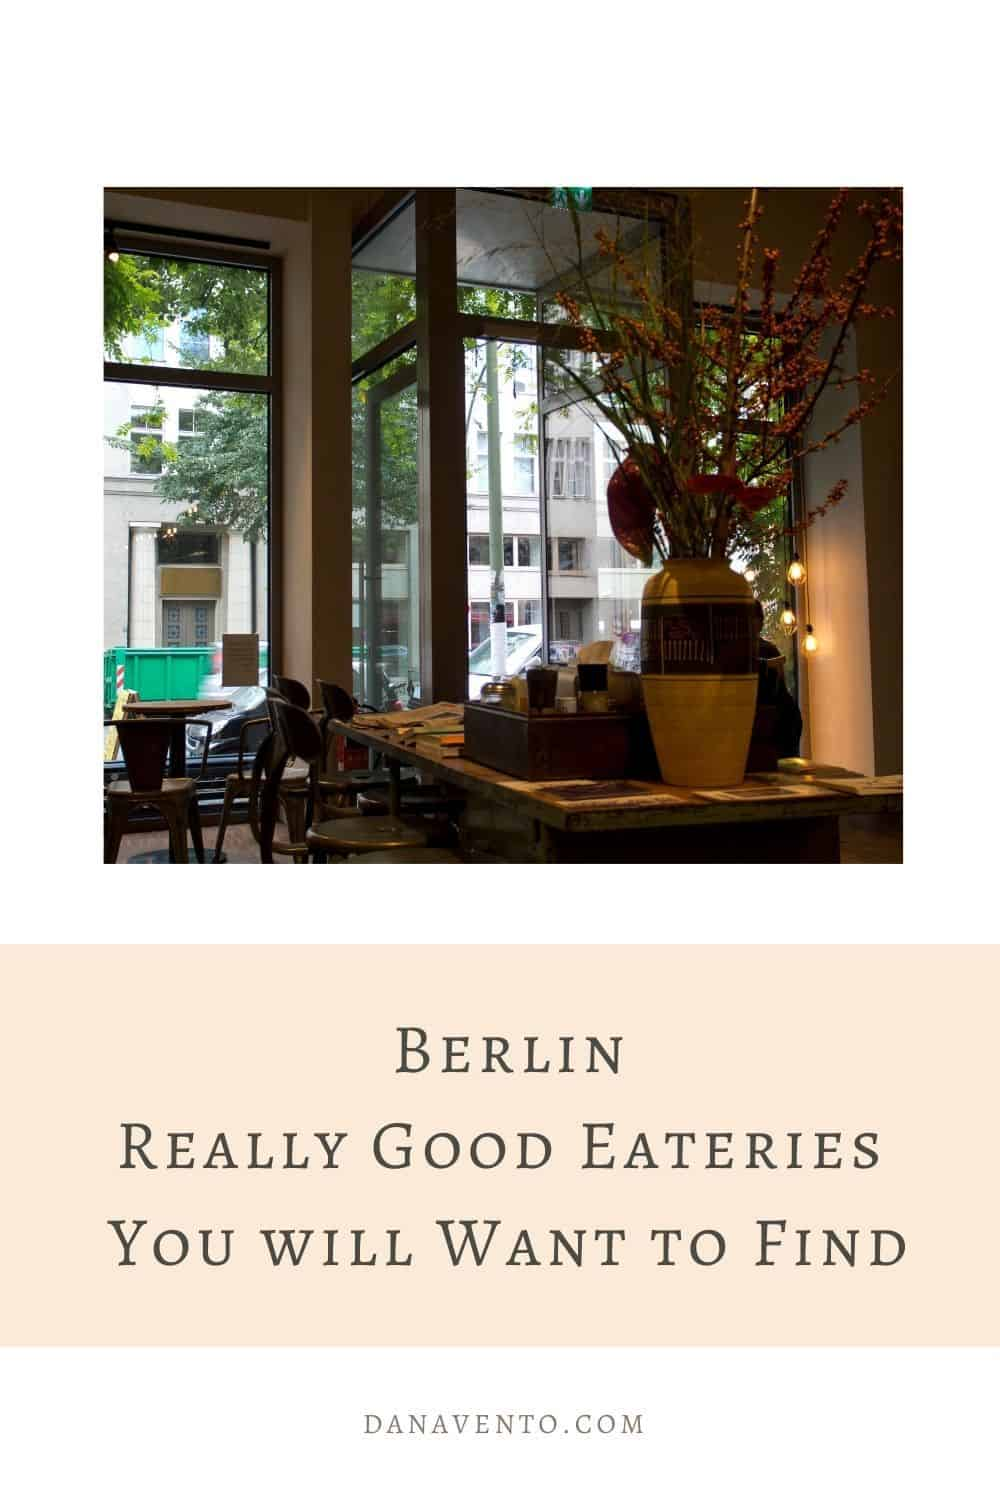 Berlin Really Good Eateries You will Want to Find